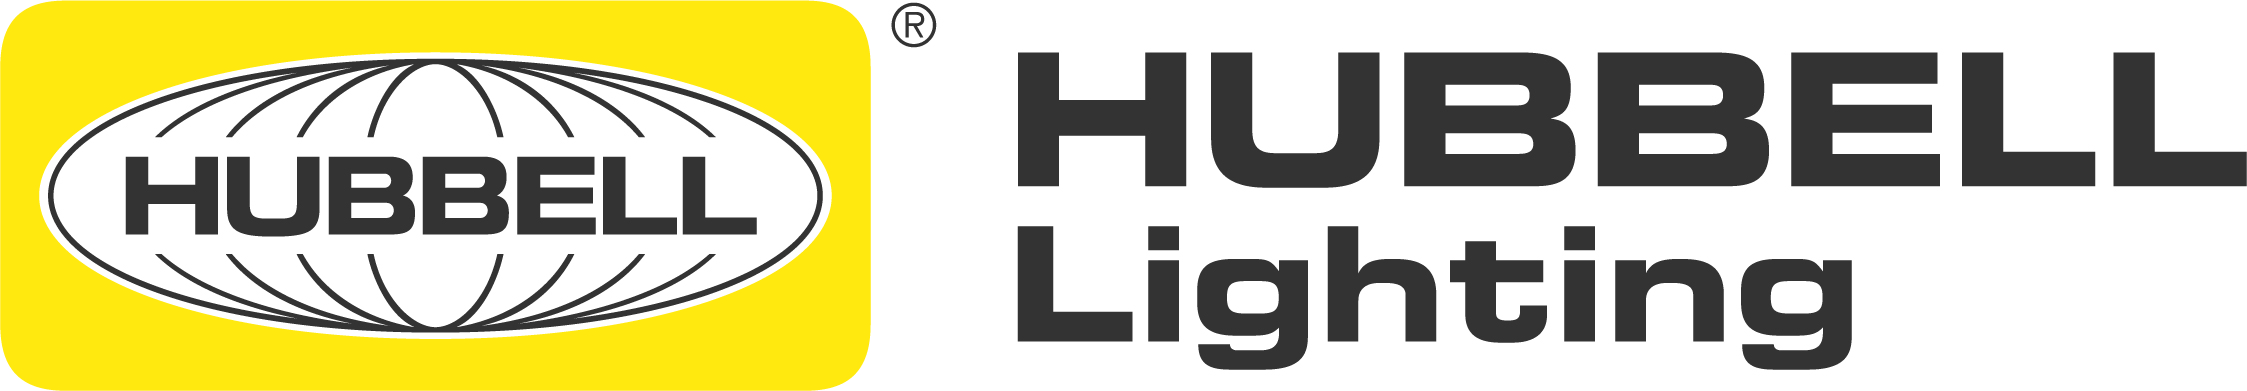 hubbell lighting resources